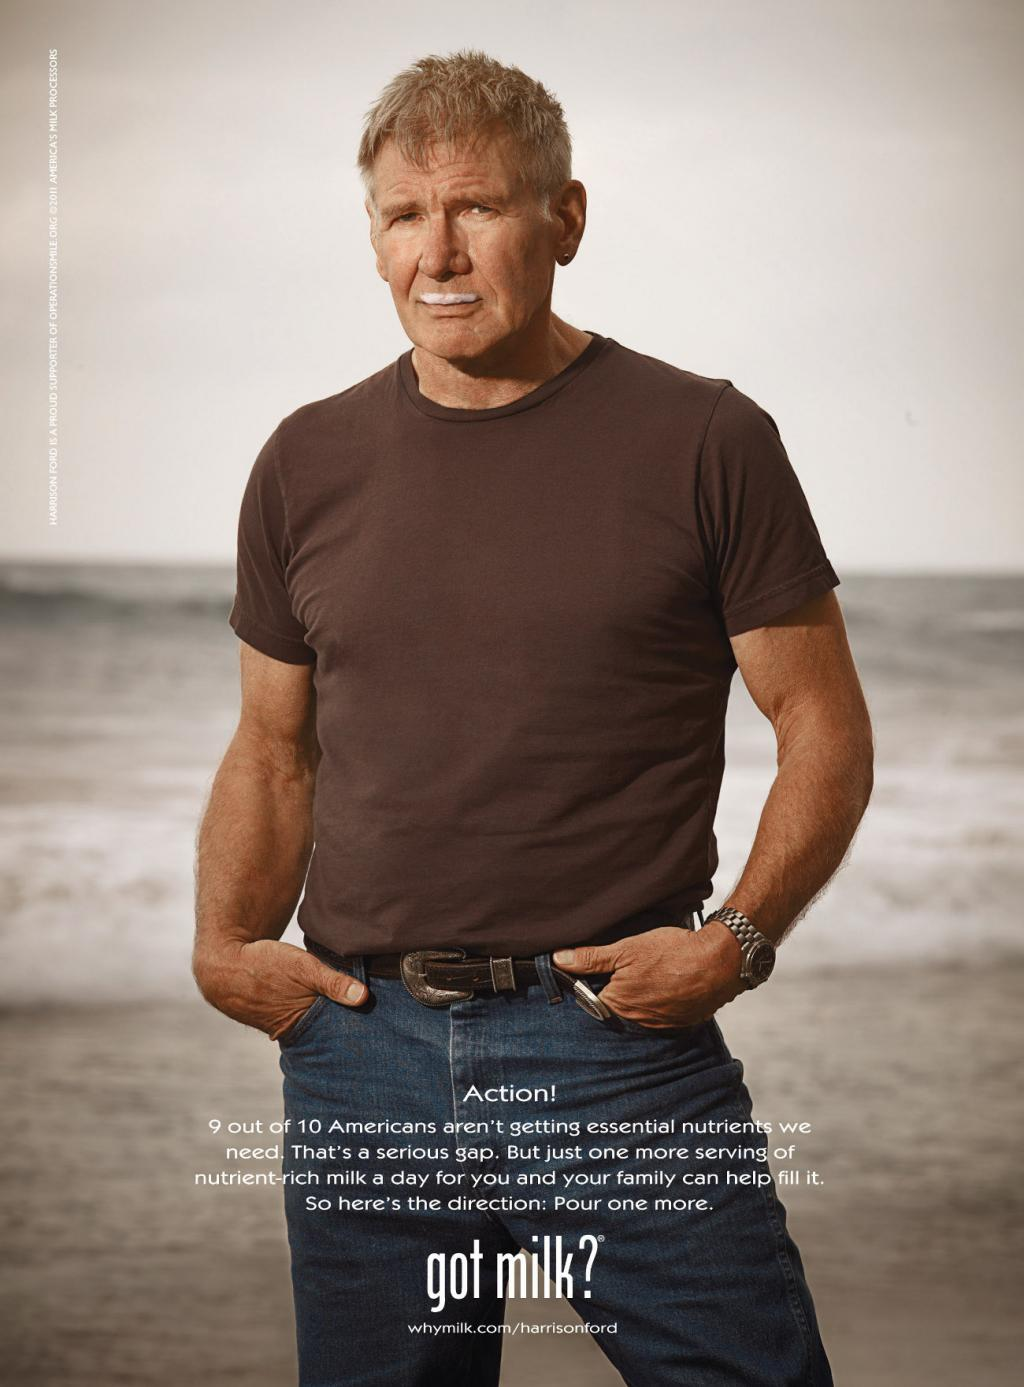 Harrison Ford: Actor, producer, and milk enthusiast.